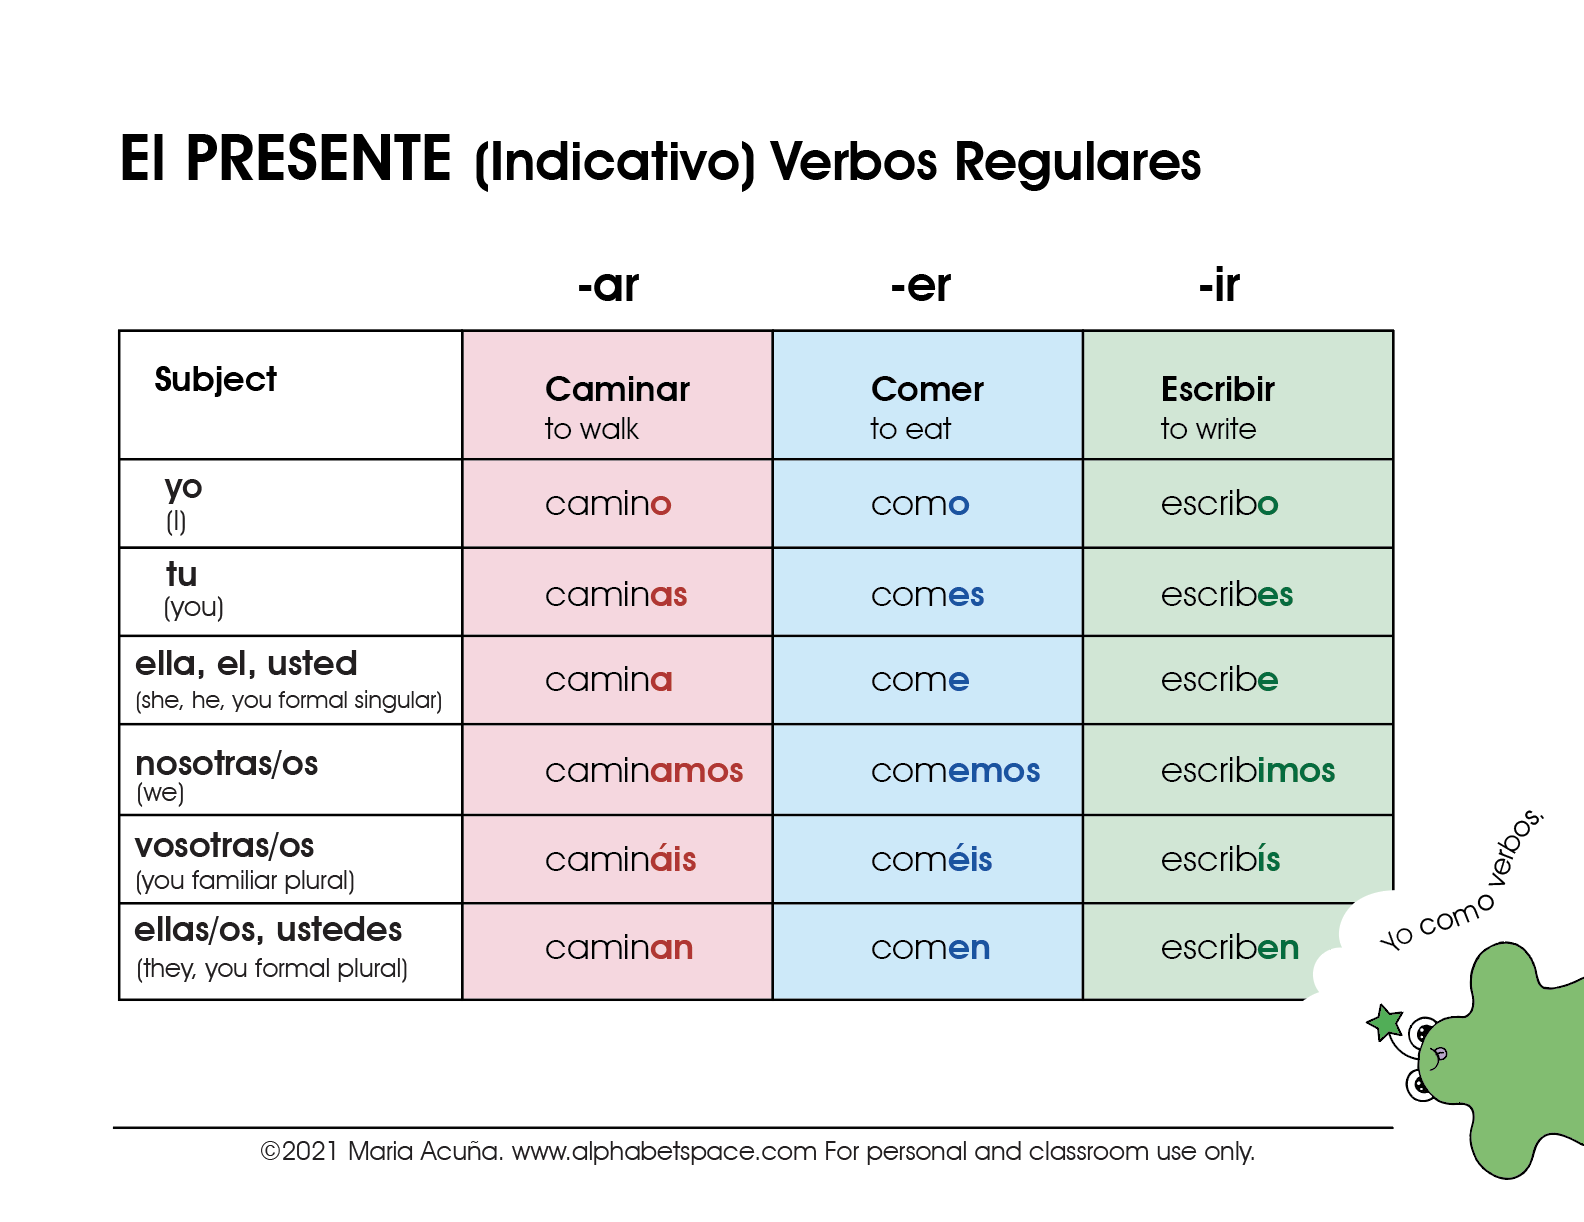 El presente Indicativo. General All Regular Verbs chart.©2021 Maria Acuña.All rights reserved. www.alphabetspace.com